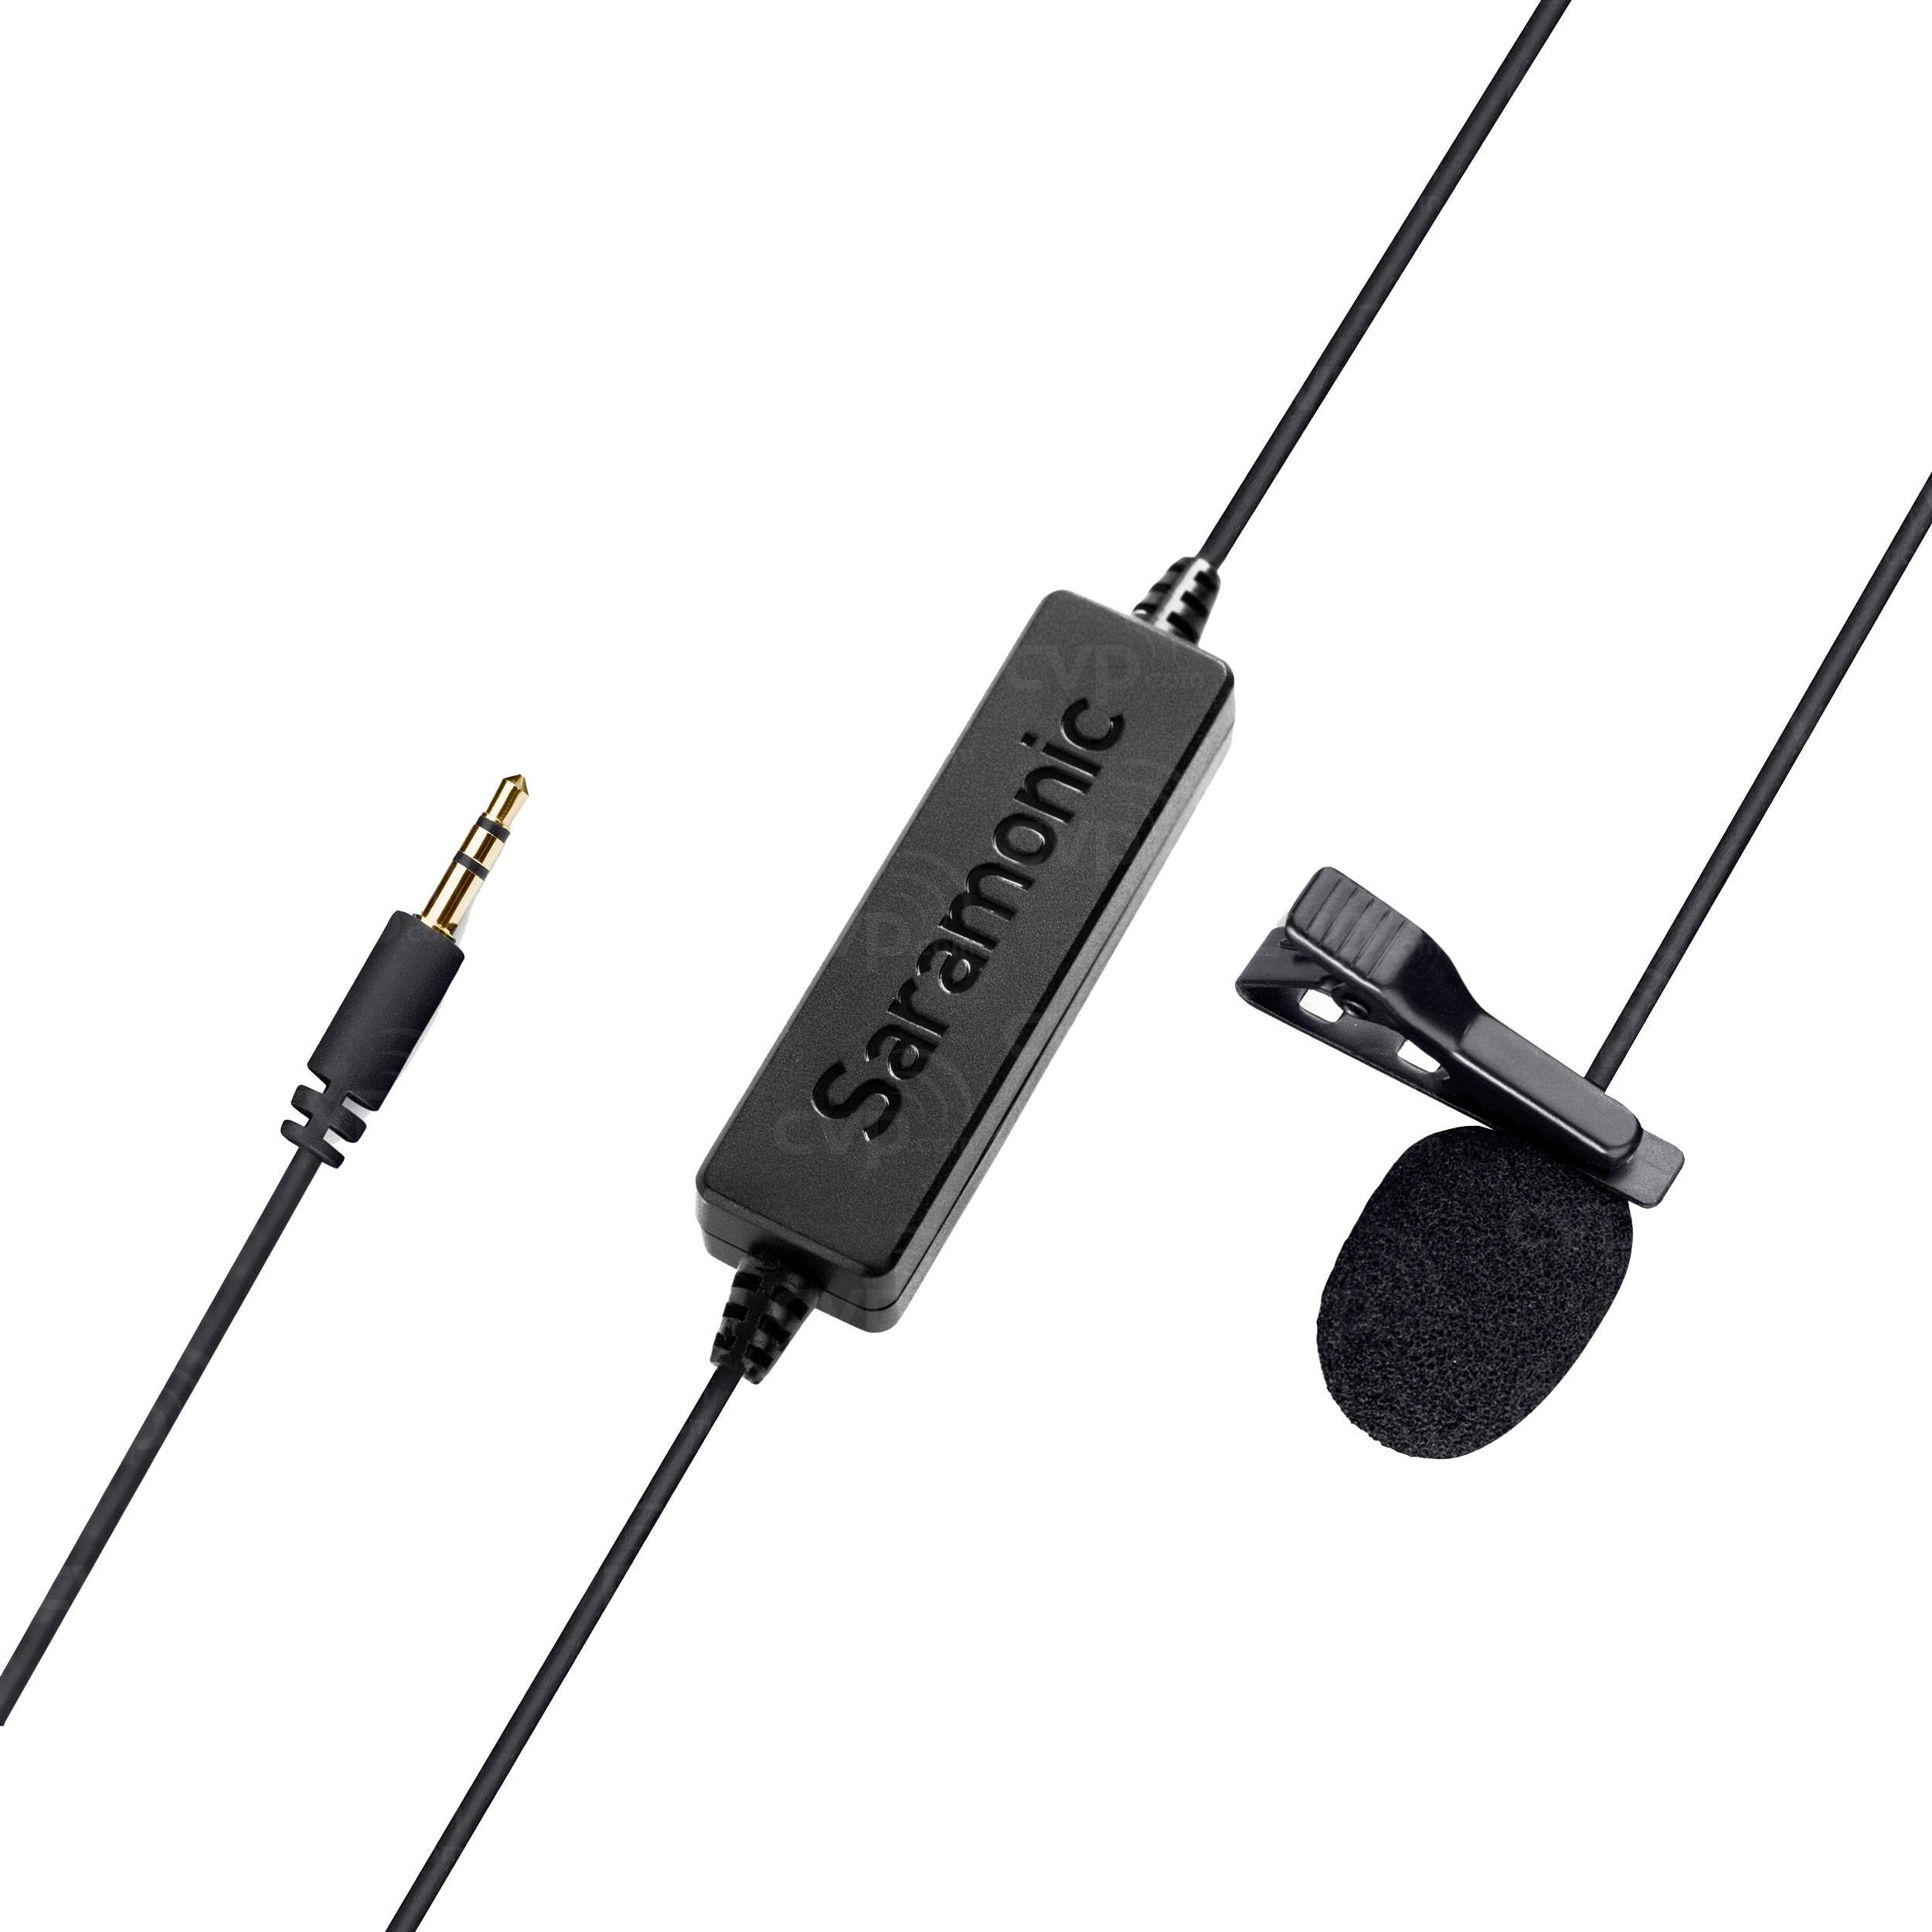 Broadcast Quality Lavalier Clip-on Microphone New Video Production & Editing Brand New Saramonic Sr-lmx1 Cameras & Photo